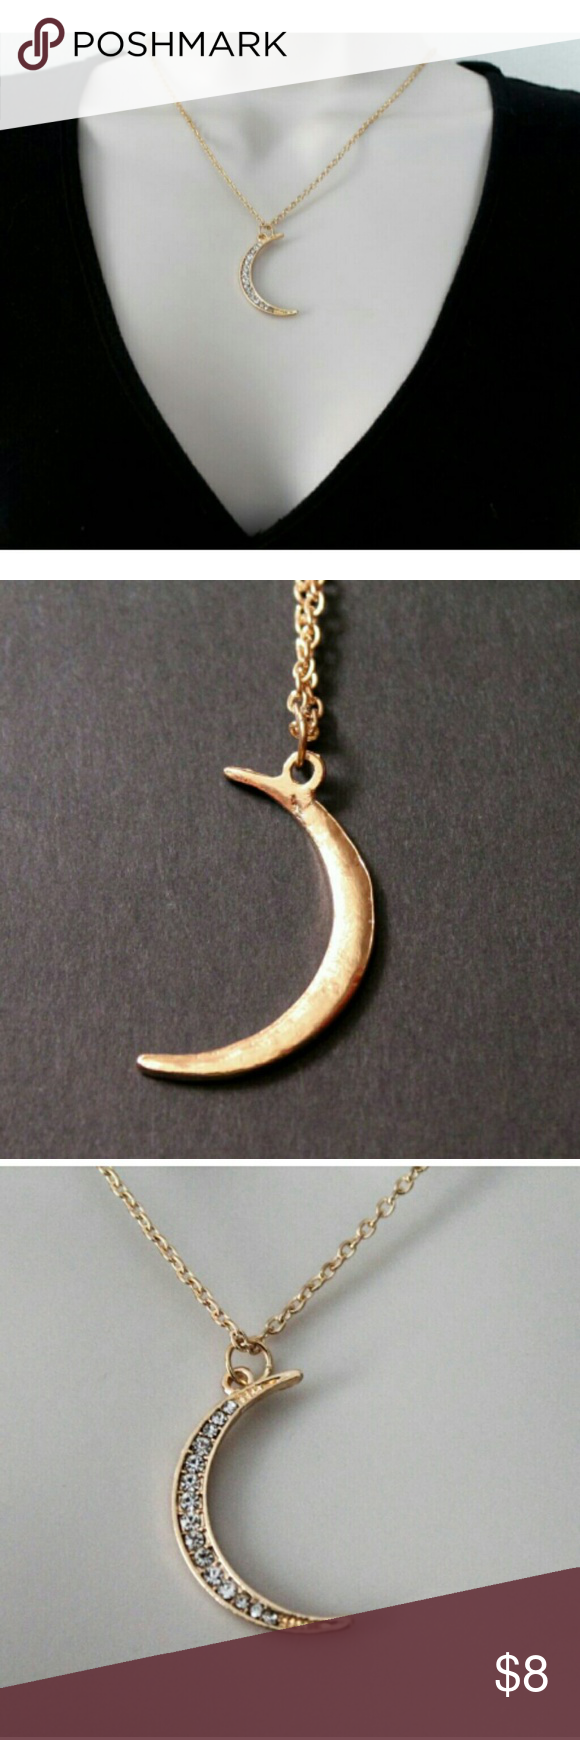 """Gold Crescent Moon Necklace Brand new and in original packaging. Gold plated Necklace length: 18.5"""" with 3""""extension chain Jewelry Necklaces"""